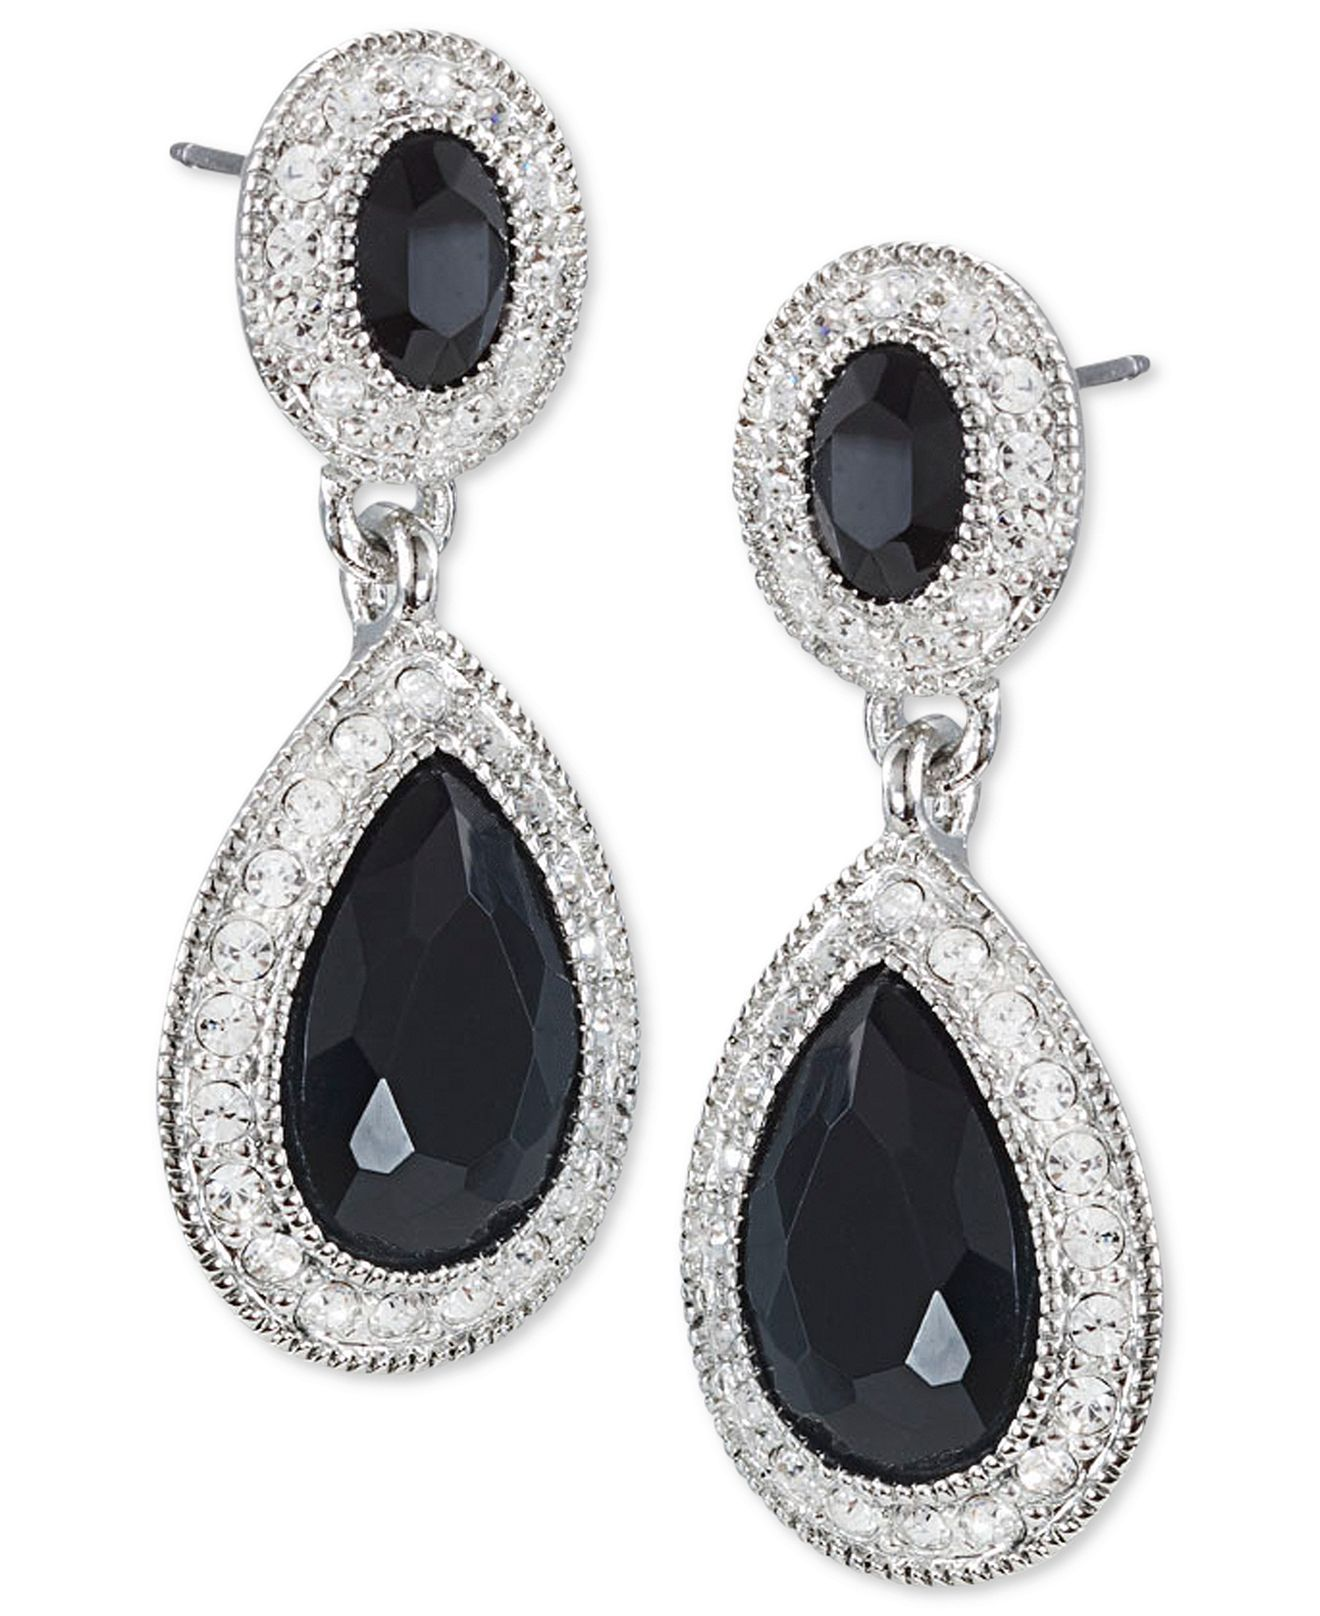 fashion drops earrings s givenchy jewelry watches macy silvertone crystal bridal pin